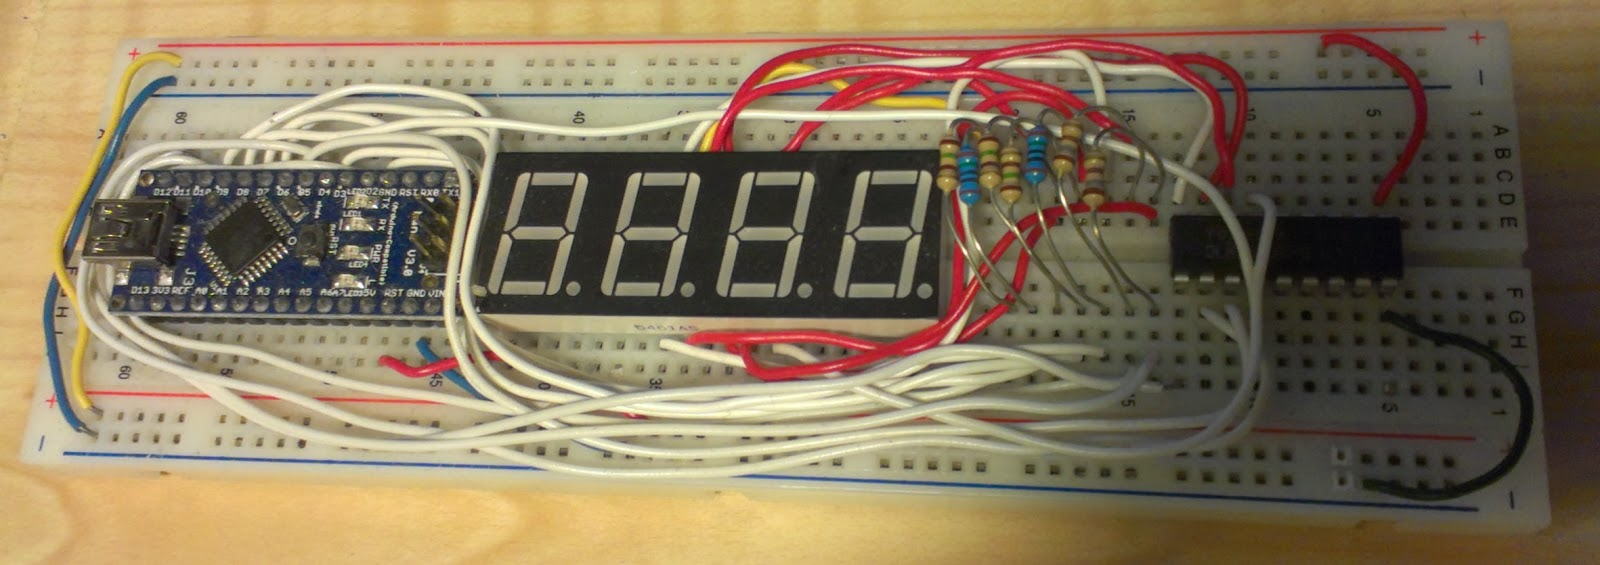 Digitalduino: An Arduino DIY Tachometer Display